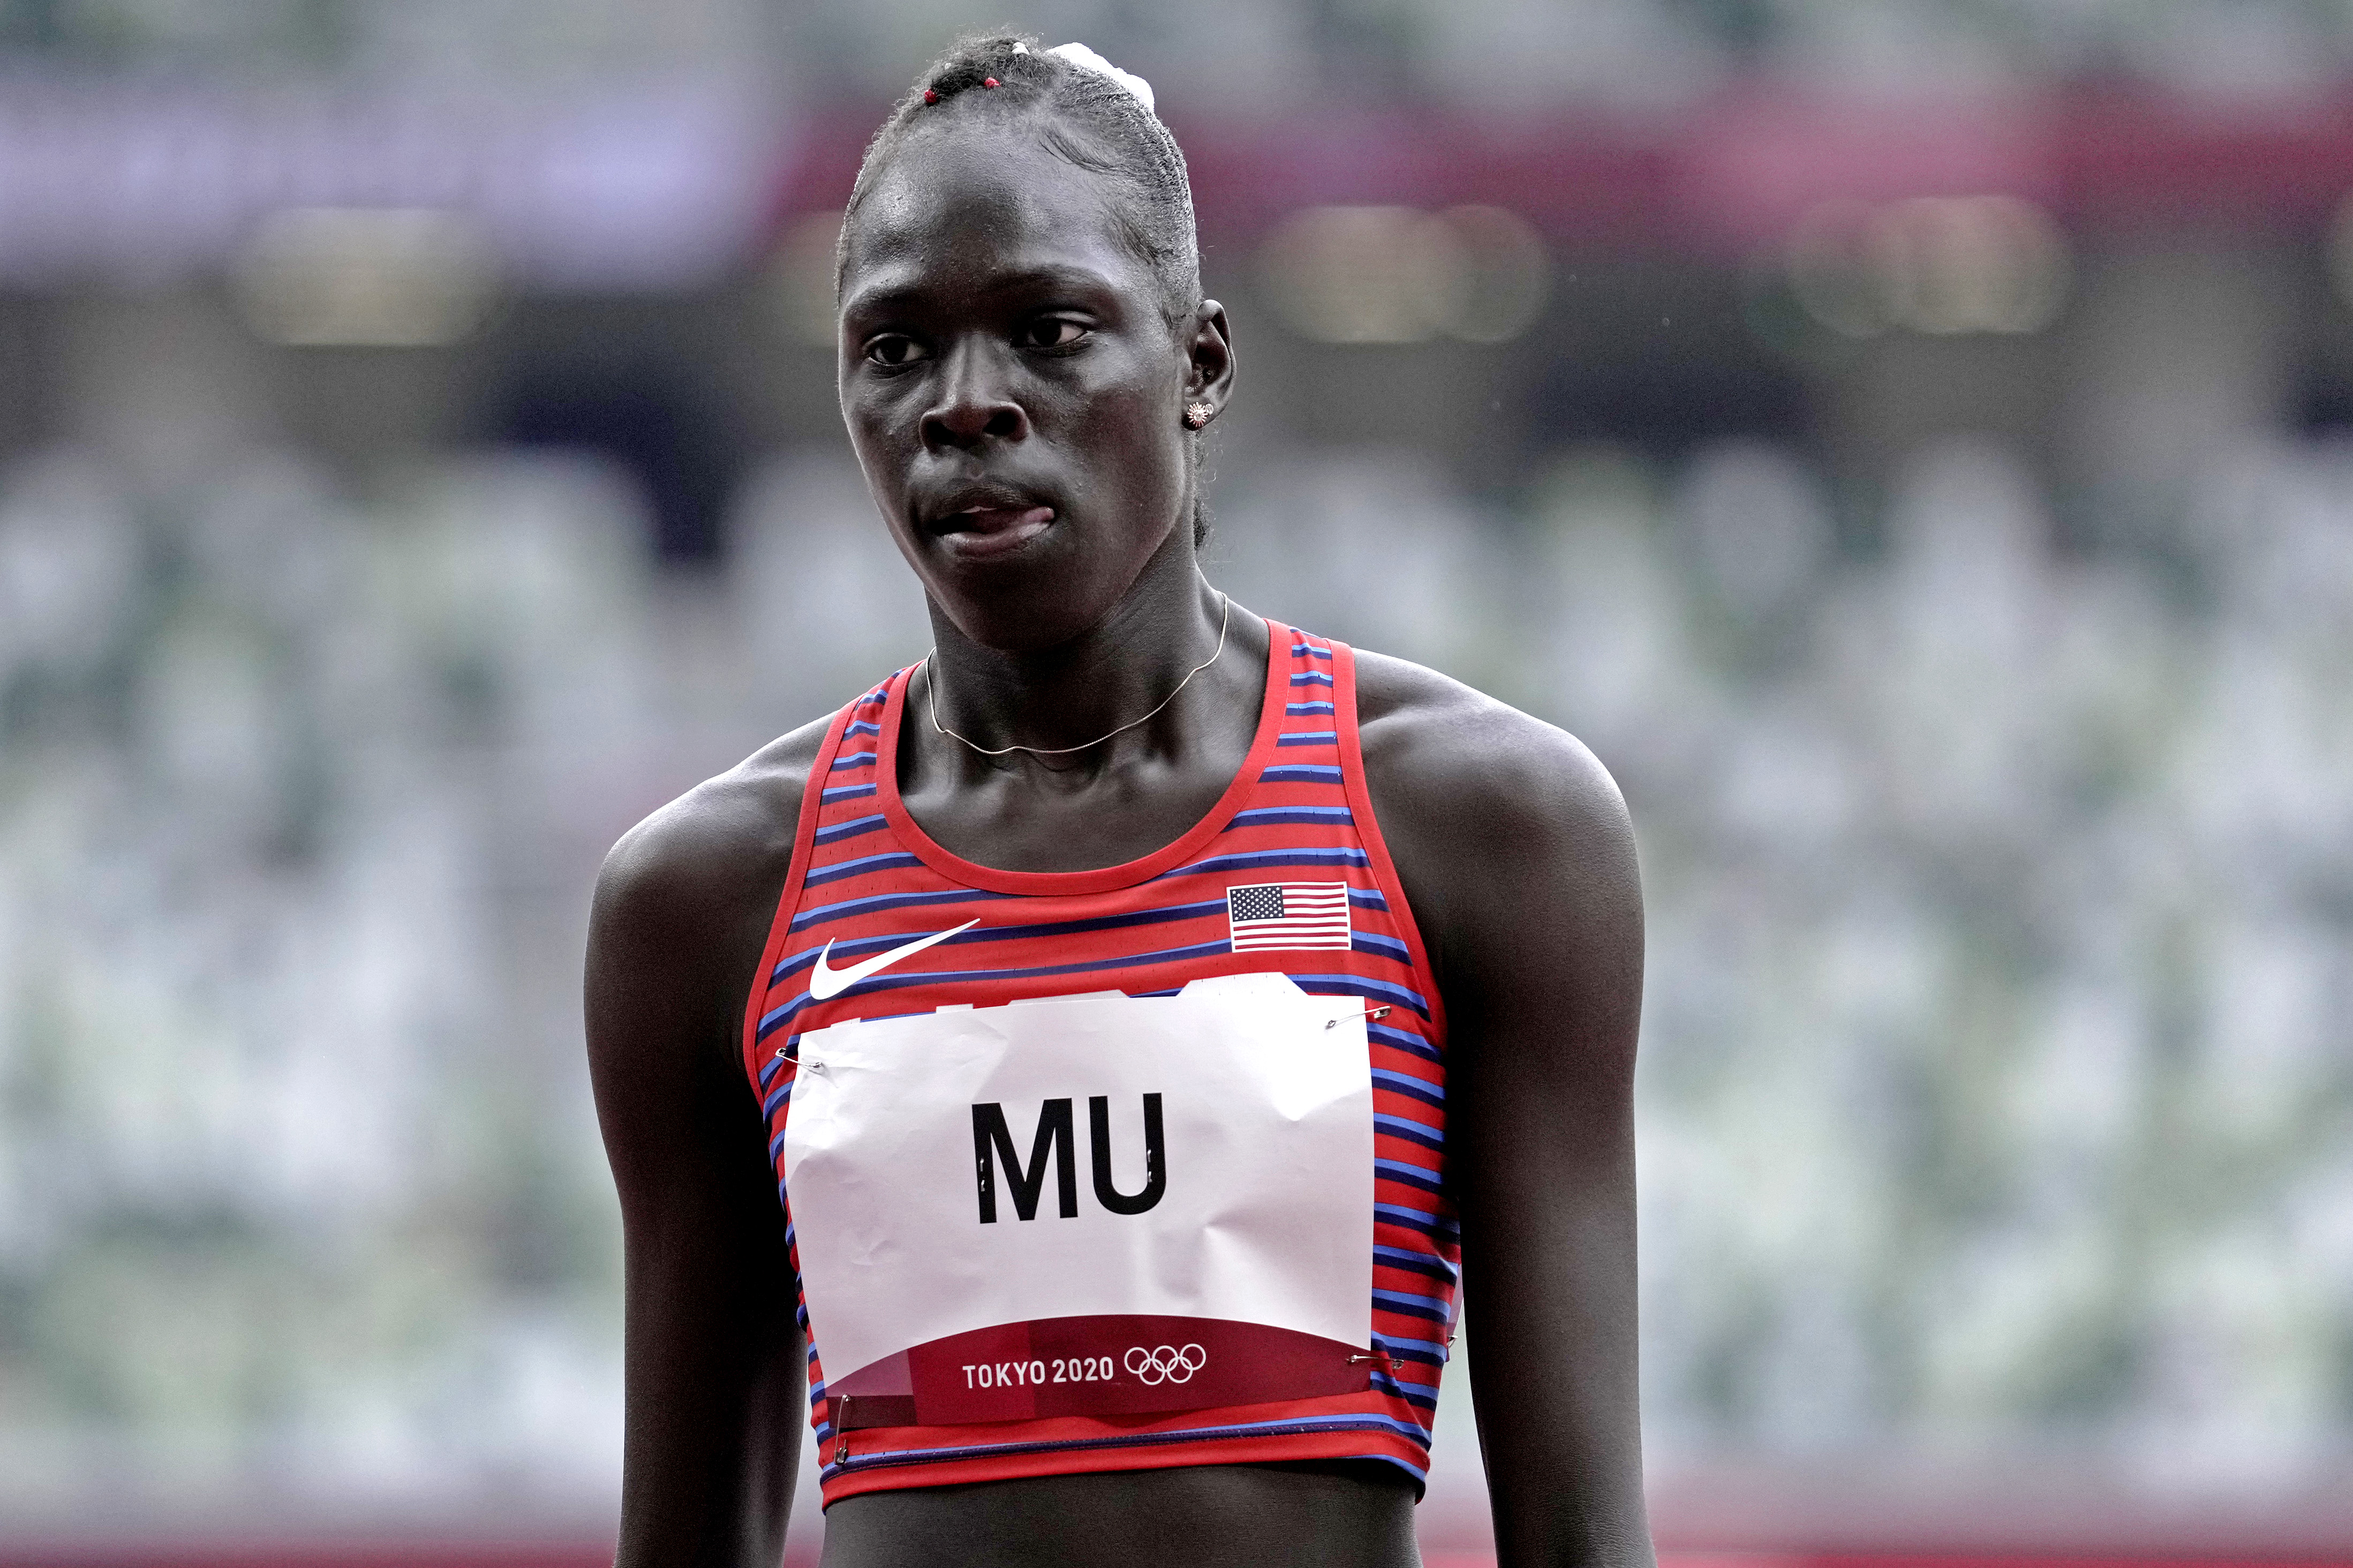 Jul 30, 2021; Tokyo, Japan; Athing Mu (USA) competes in the women's 800m heat 3 during the Tokyo 2020 Olympic Summer Games at Olympic Stadium. Mandatory Credit: James Lang-USA TODAY Sports